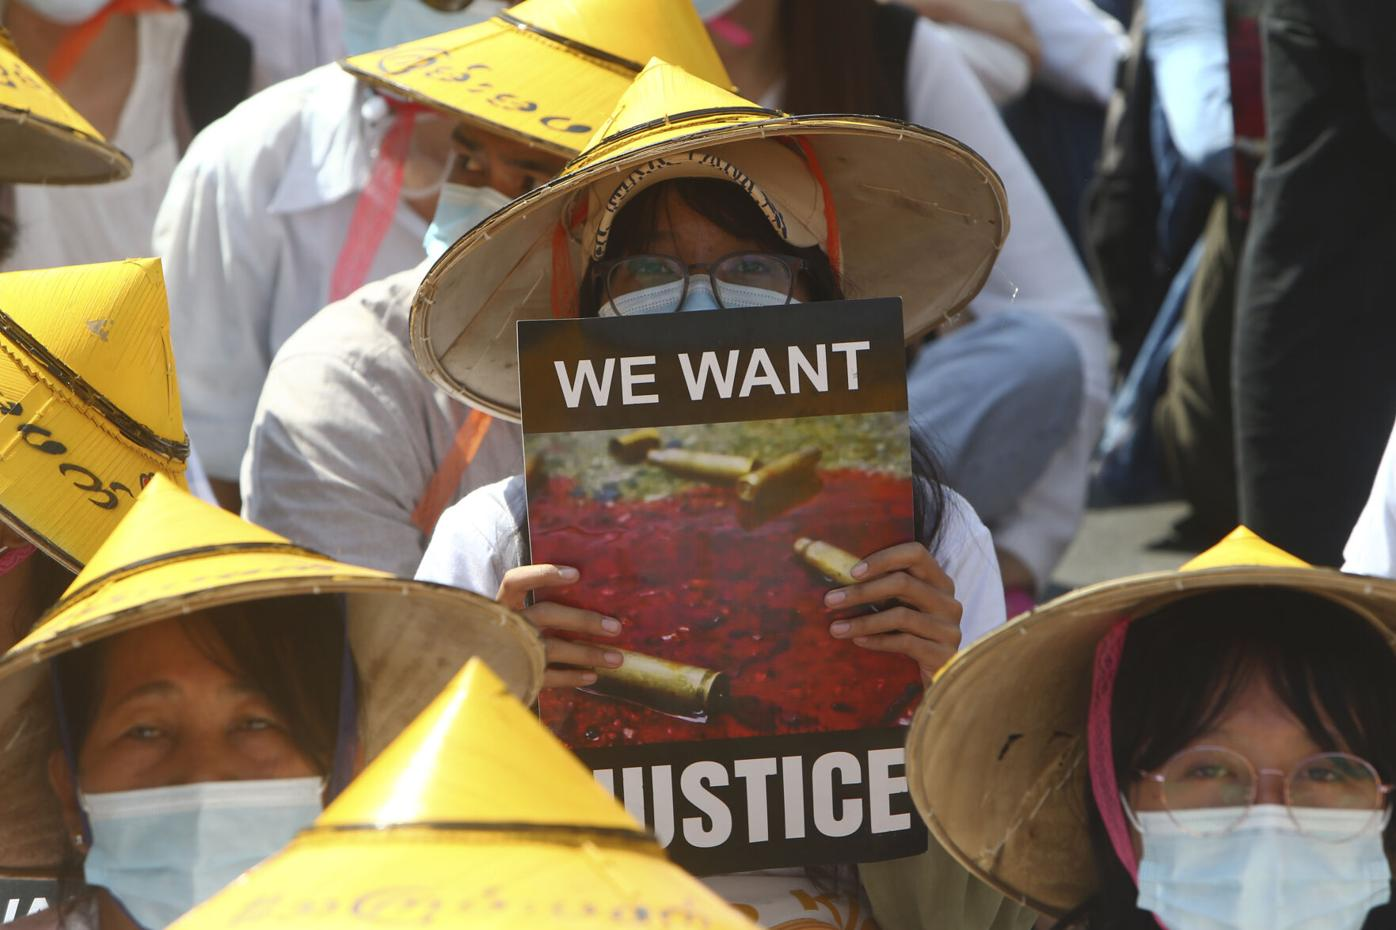 Protests swell after Myanmar junta raises specter of force